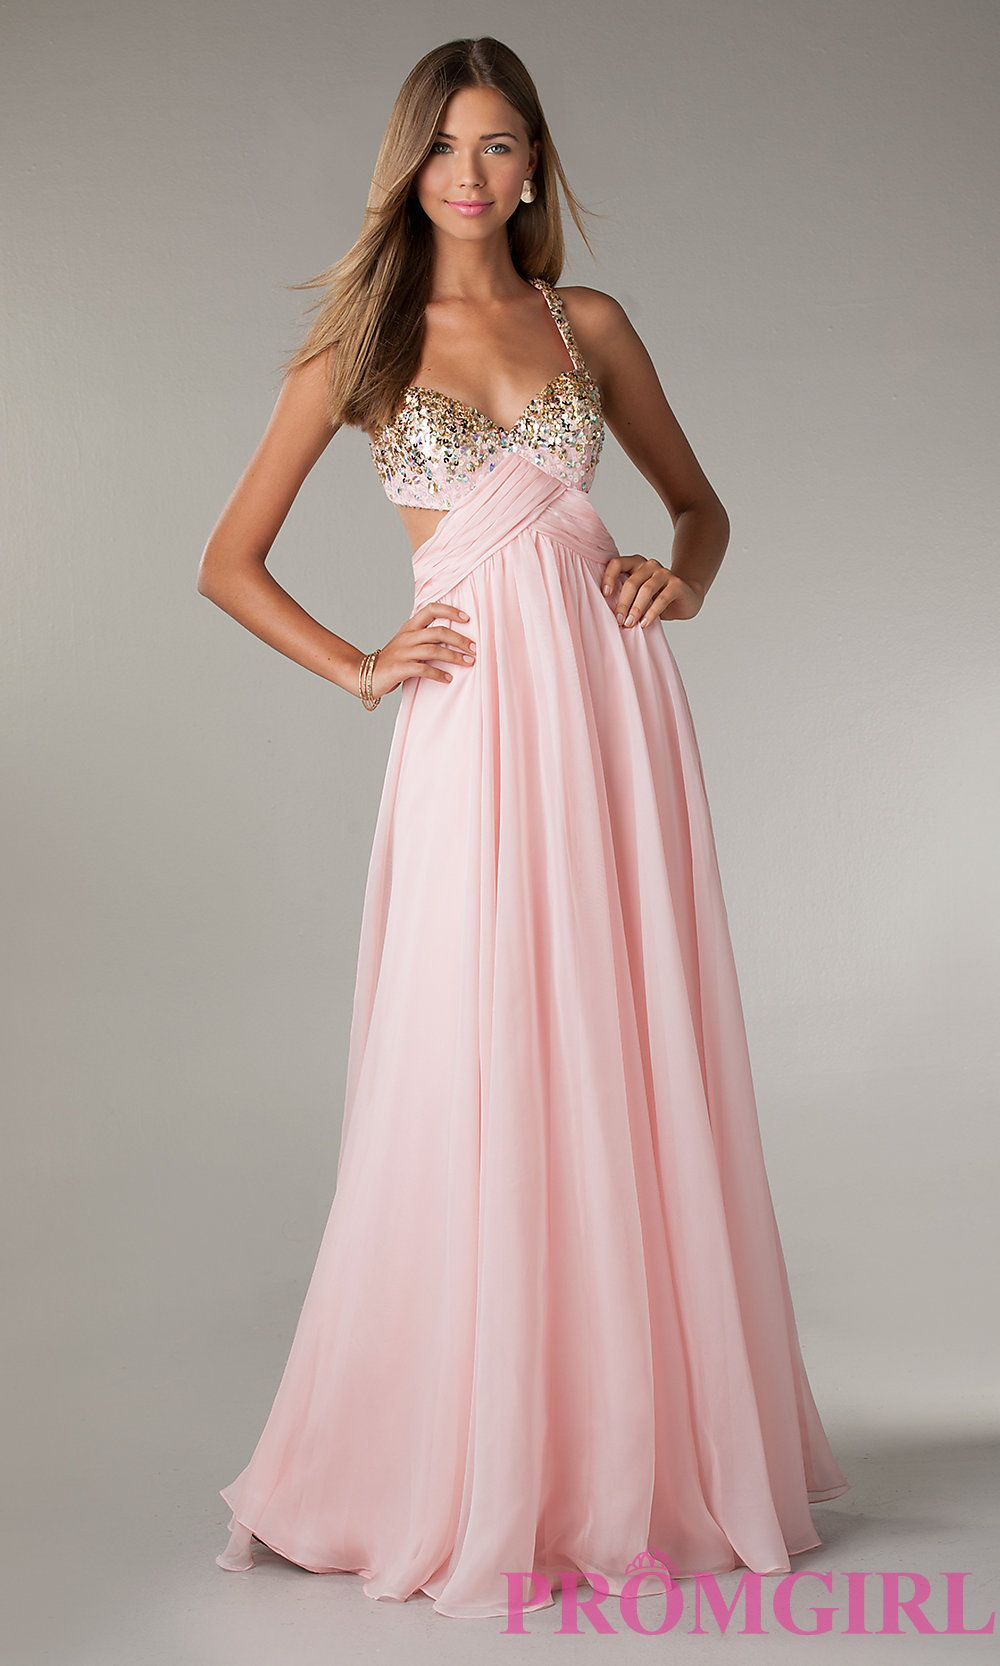 flirt prom dress fl p2811 Simply fab dress is a leading prom dress website and formal dress store, with offices in tampa, fl & los angeles, ca usa wear a flirty, cute prom dress like our print dresses or chiffon prom dresses great for a soft, delicate yet chic look.